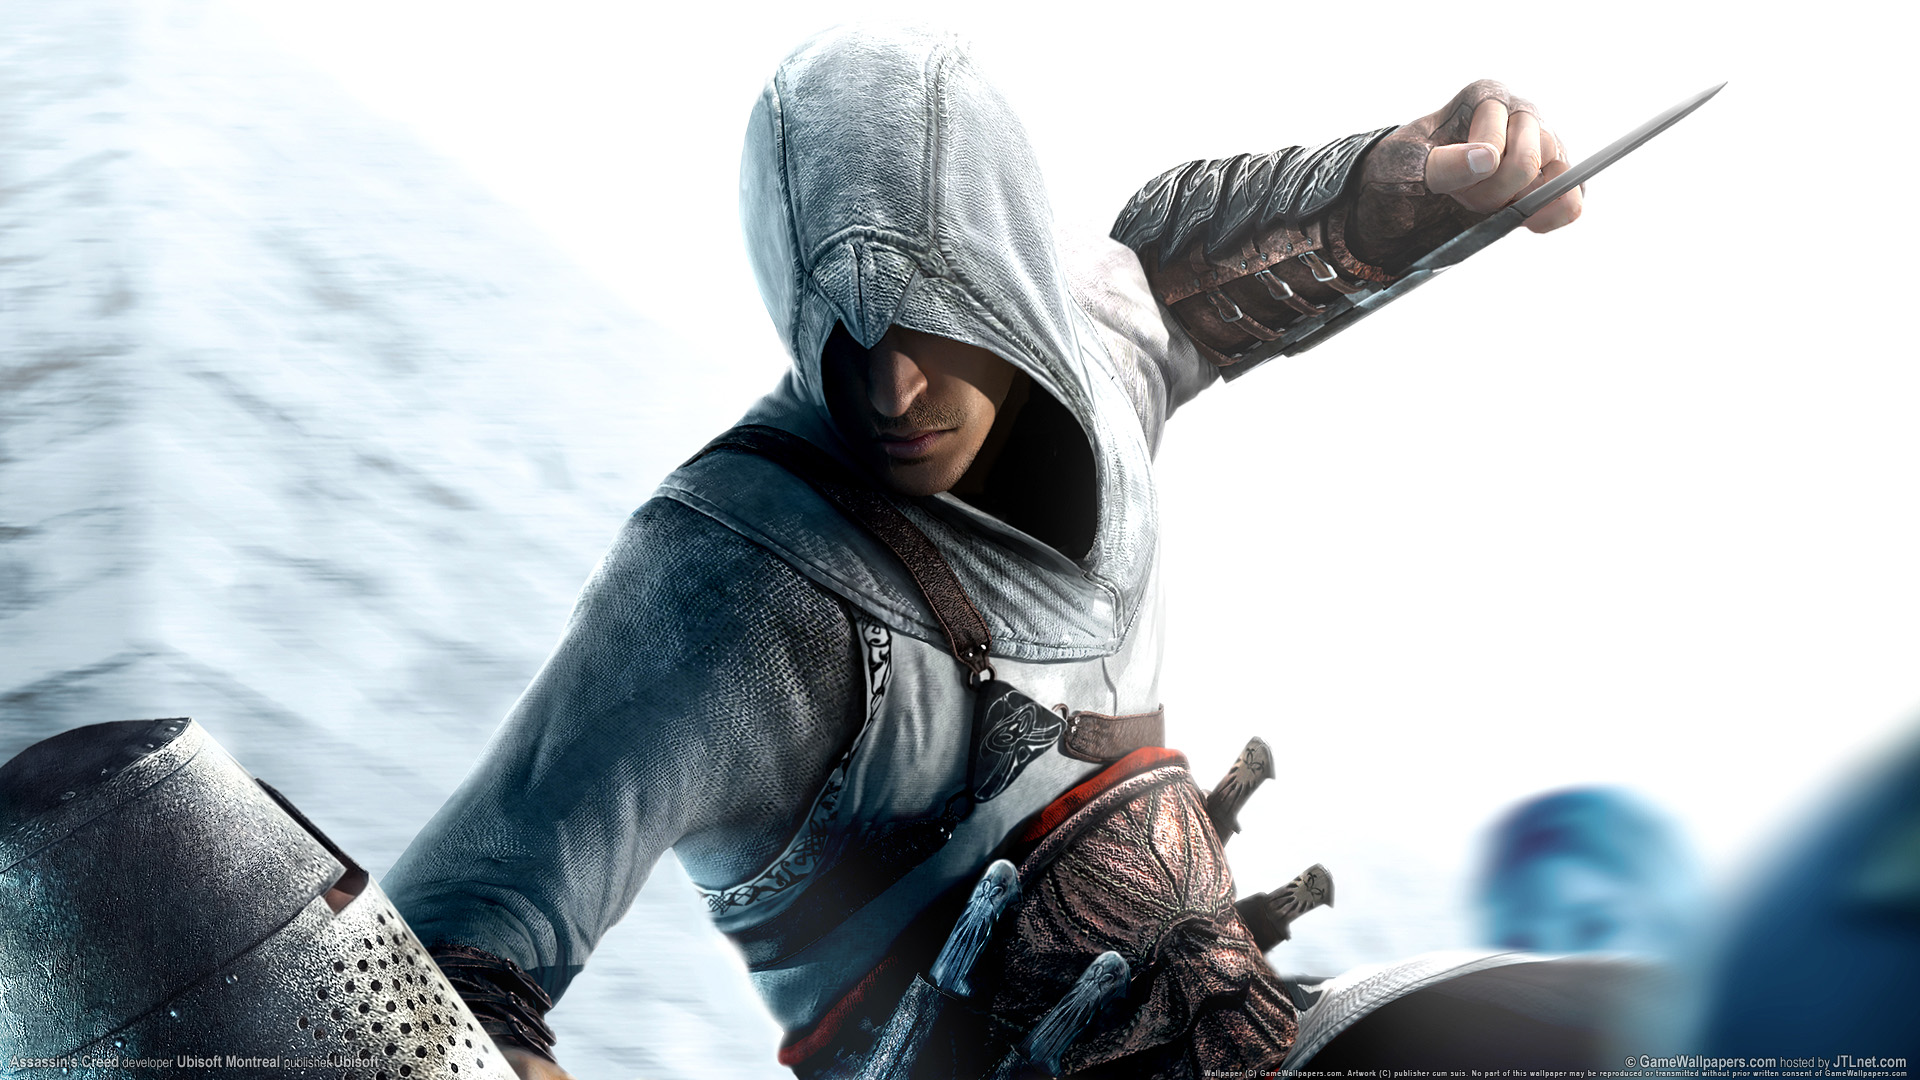 Amazing   Wallpaper Horse Assassin'S Creed - 70989  Best Photo Reference_74957.jpg